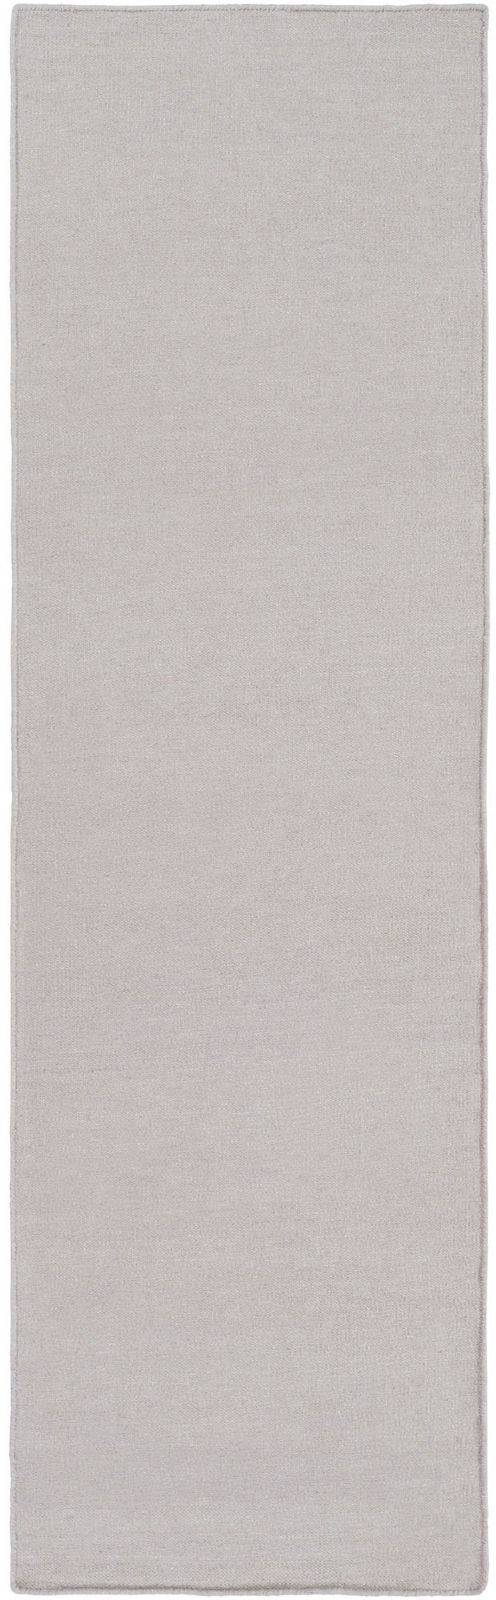 surya dutchess solid/striped area rug collection